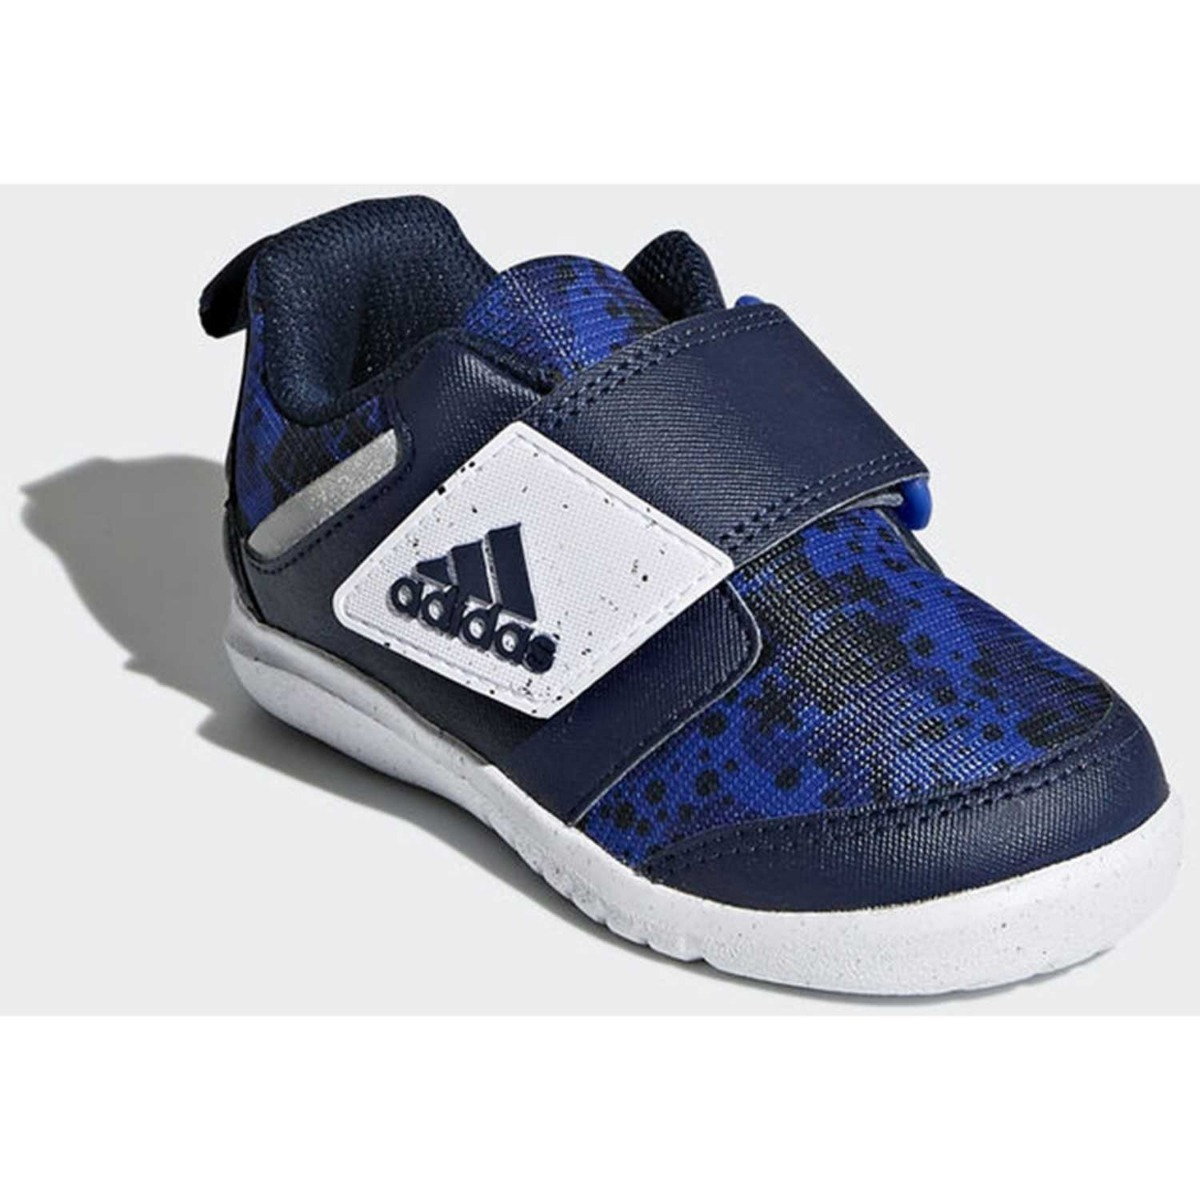 zapatillas niño adidas,zapatillas niño adidas outlet